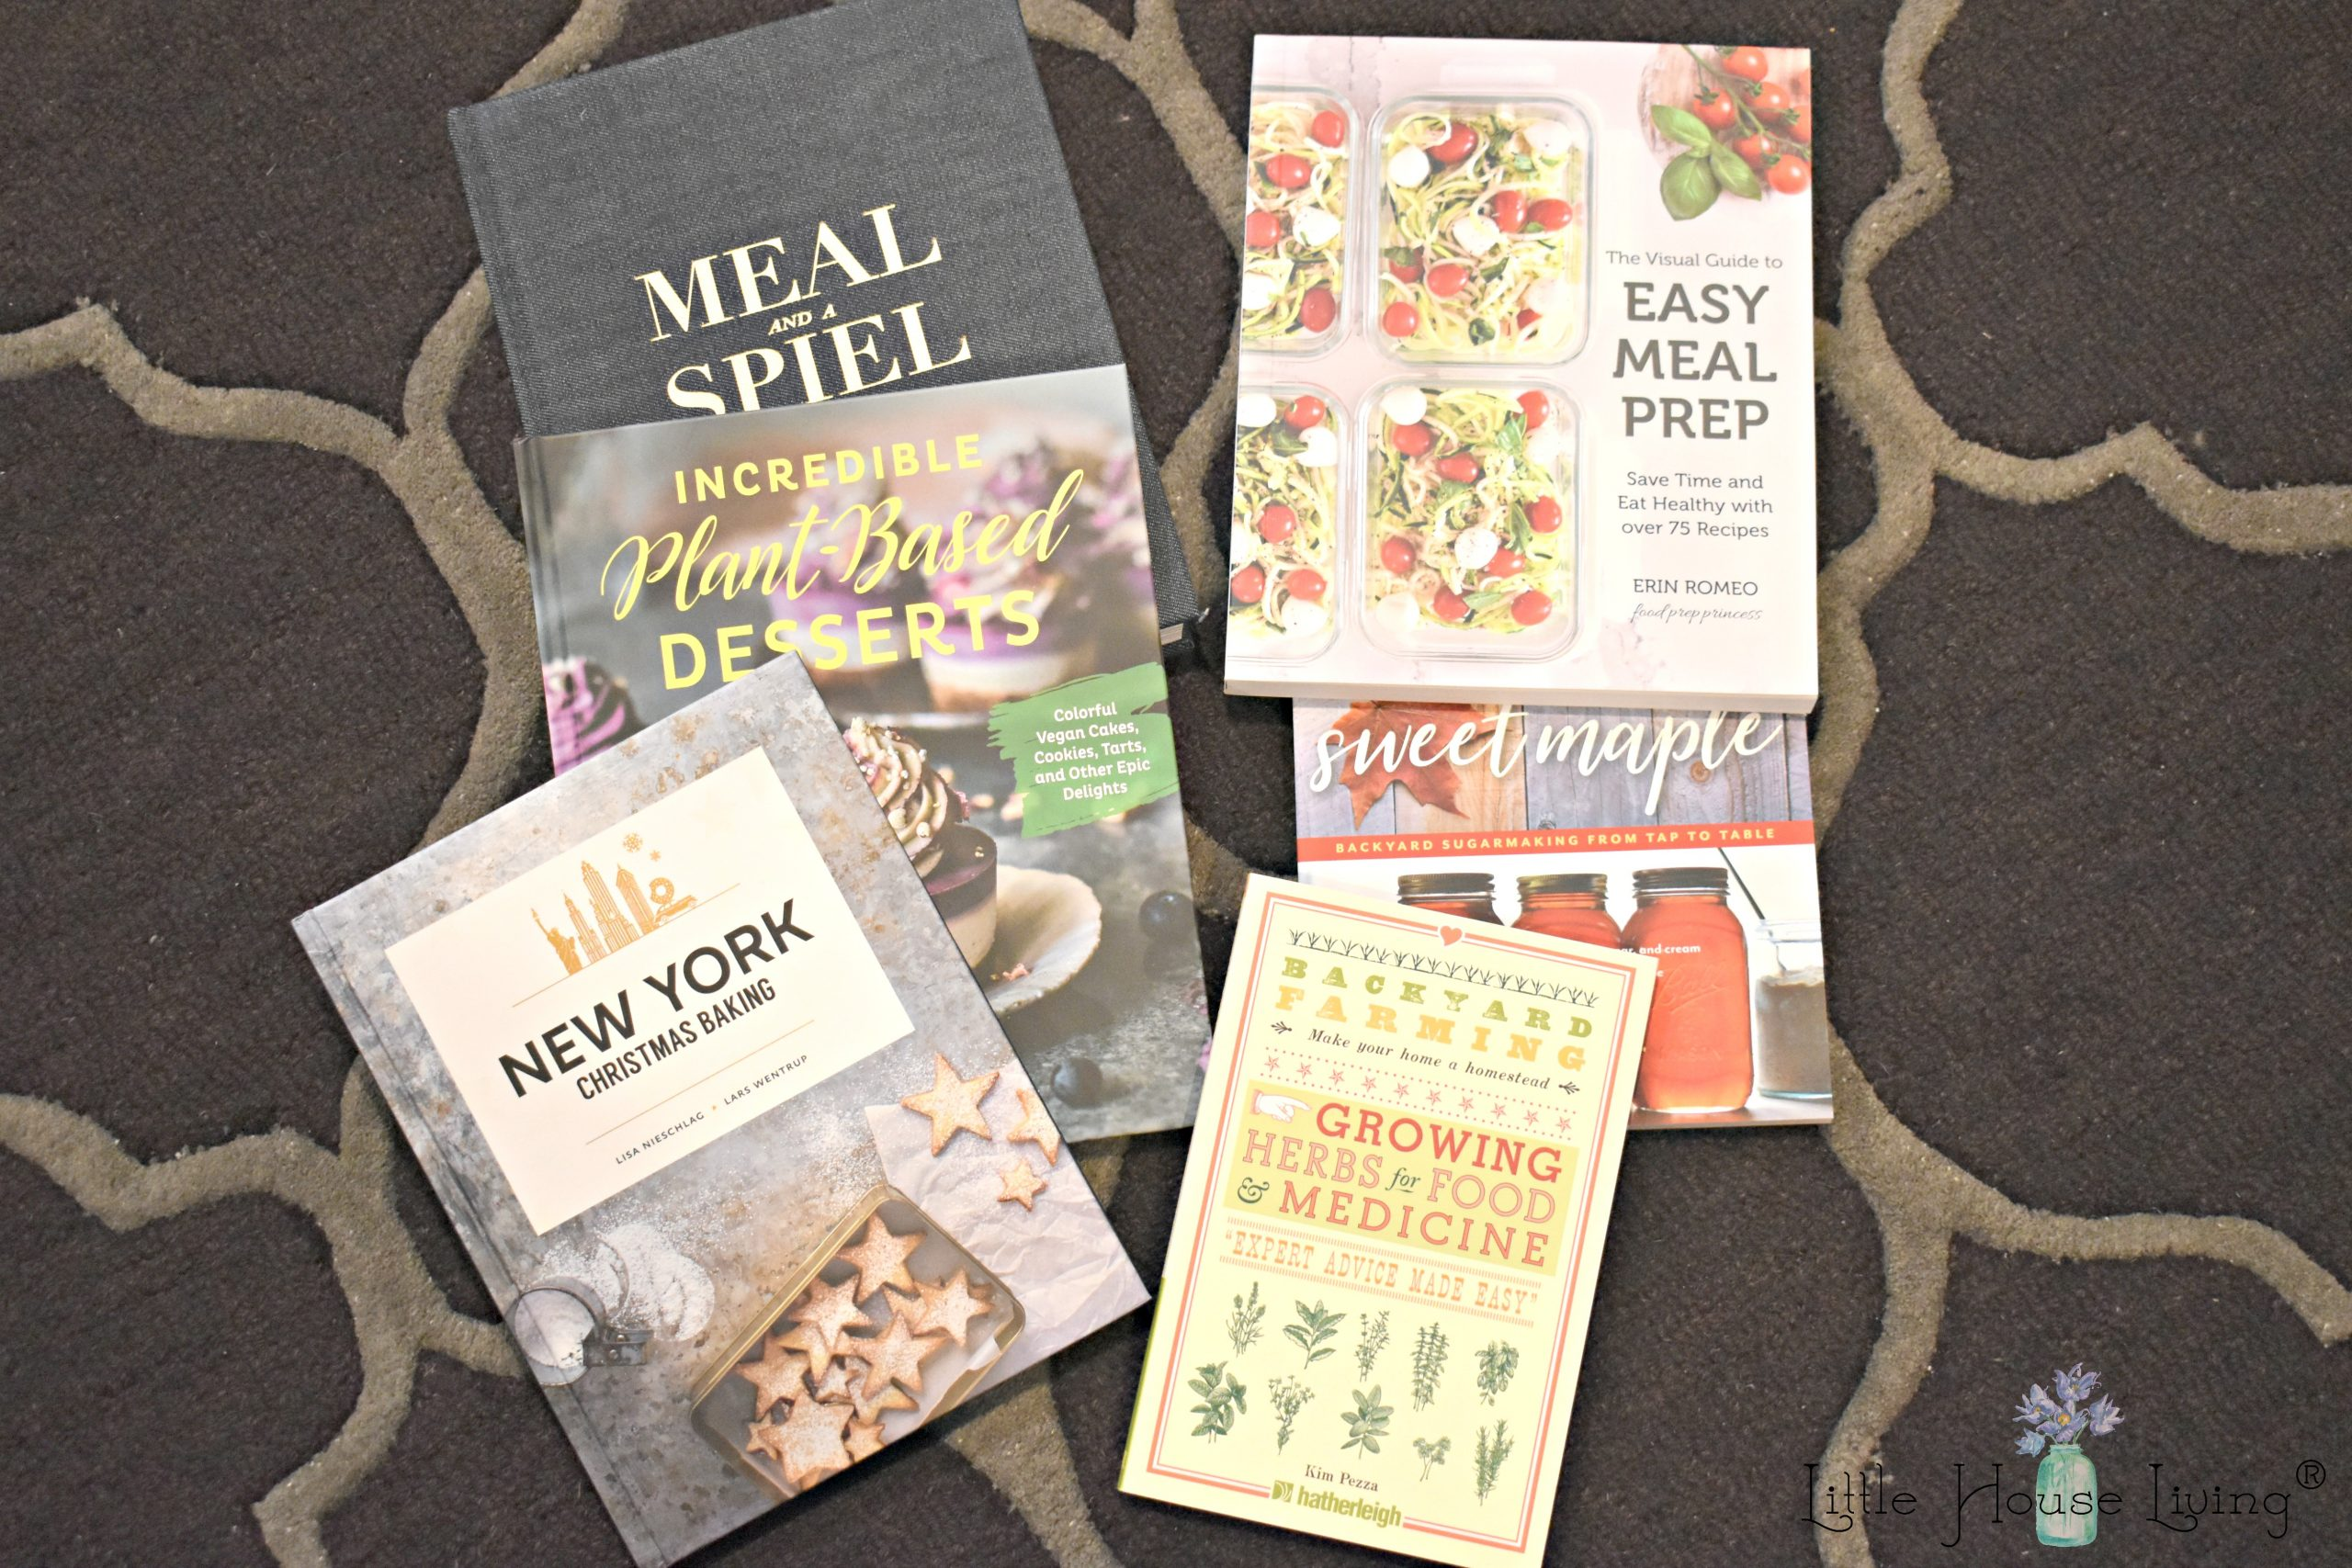 Looking for reviews on some of the latest books about home, gardens, cooking, and more? Here are my reviews on some books that arrived in my mailbox during the month of October. #bookreviews #bookgiveaway #goodreads